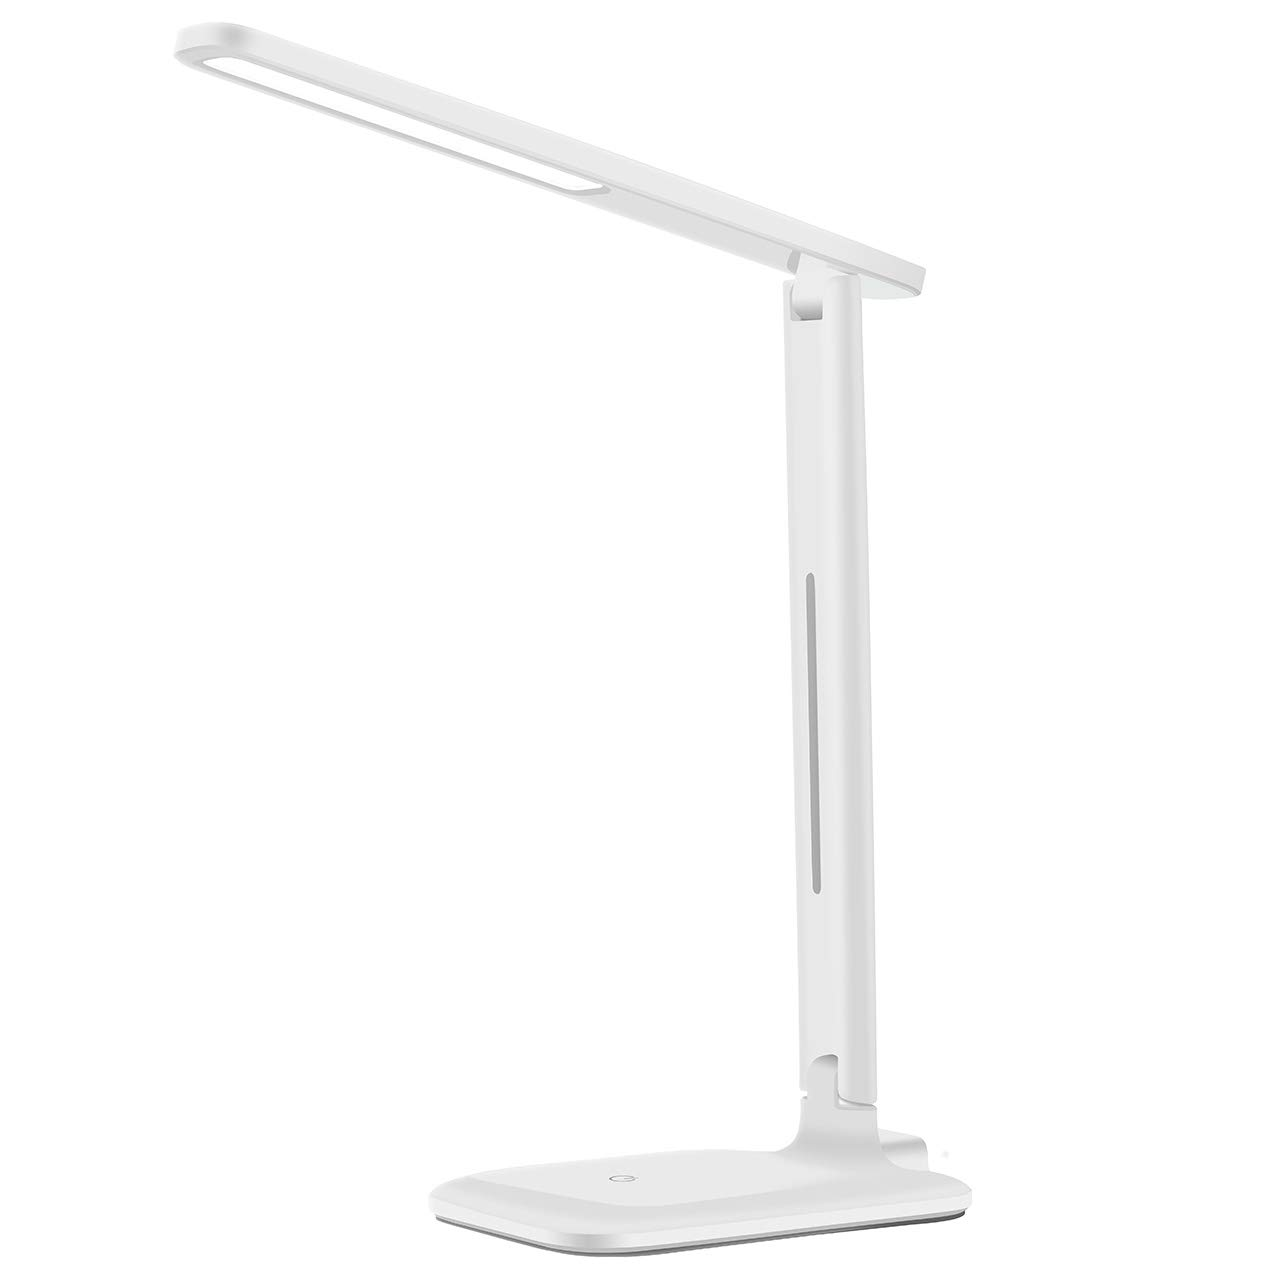 Yantop LED Desk Lamp, Eye-Caring Table Lamp, Dimmable Office Study Computer Desk Lamp, Touch Control, Memory Function, 9 Brightness Light, Foldable LED Lamp for Reading, Studying,Working,White